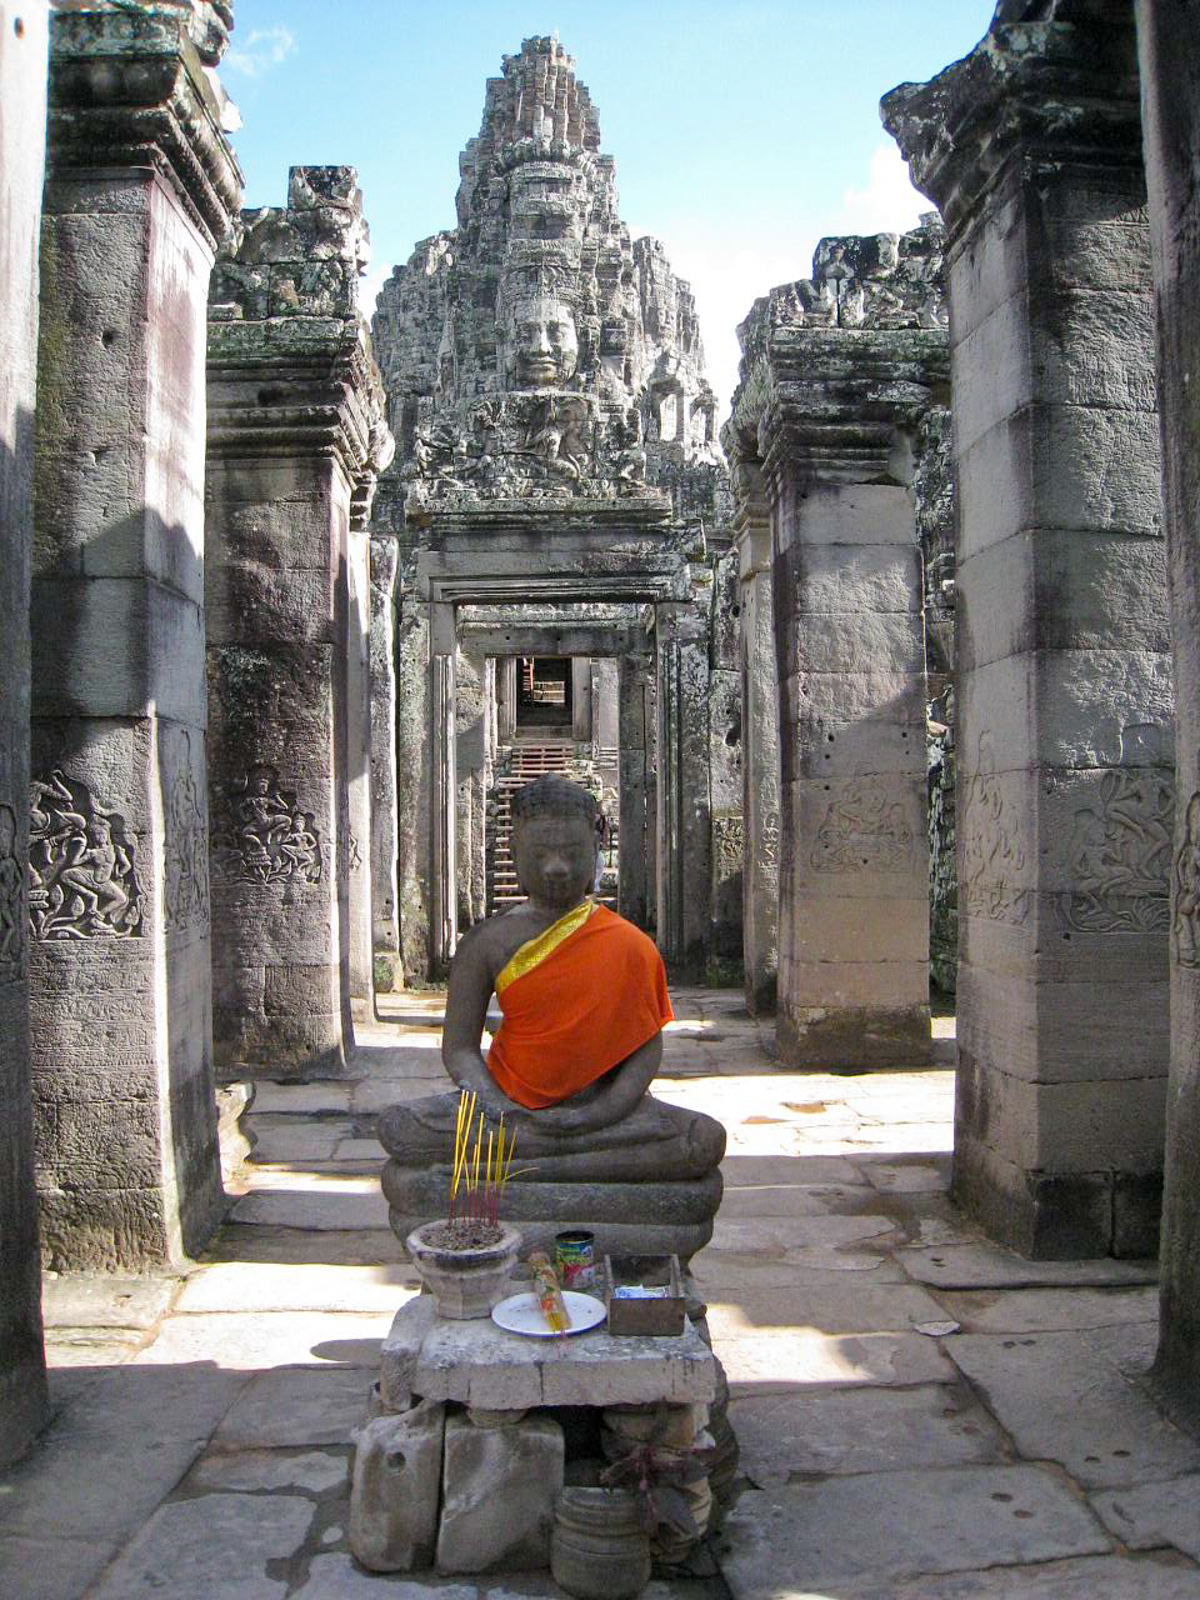 Offerings for Buddha at Bayon ruins in Cambodia